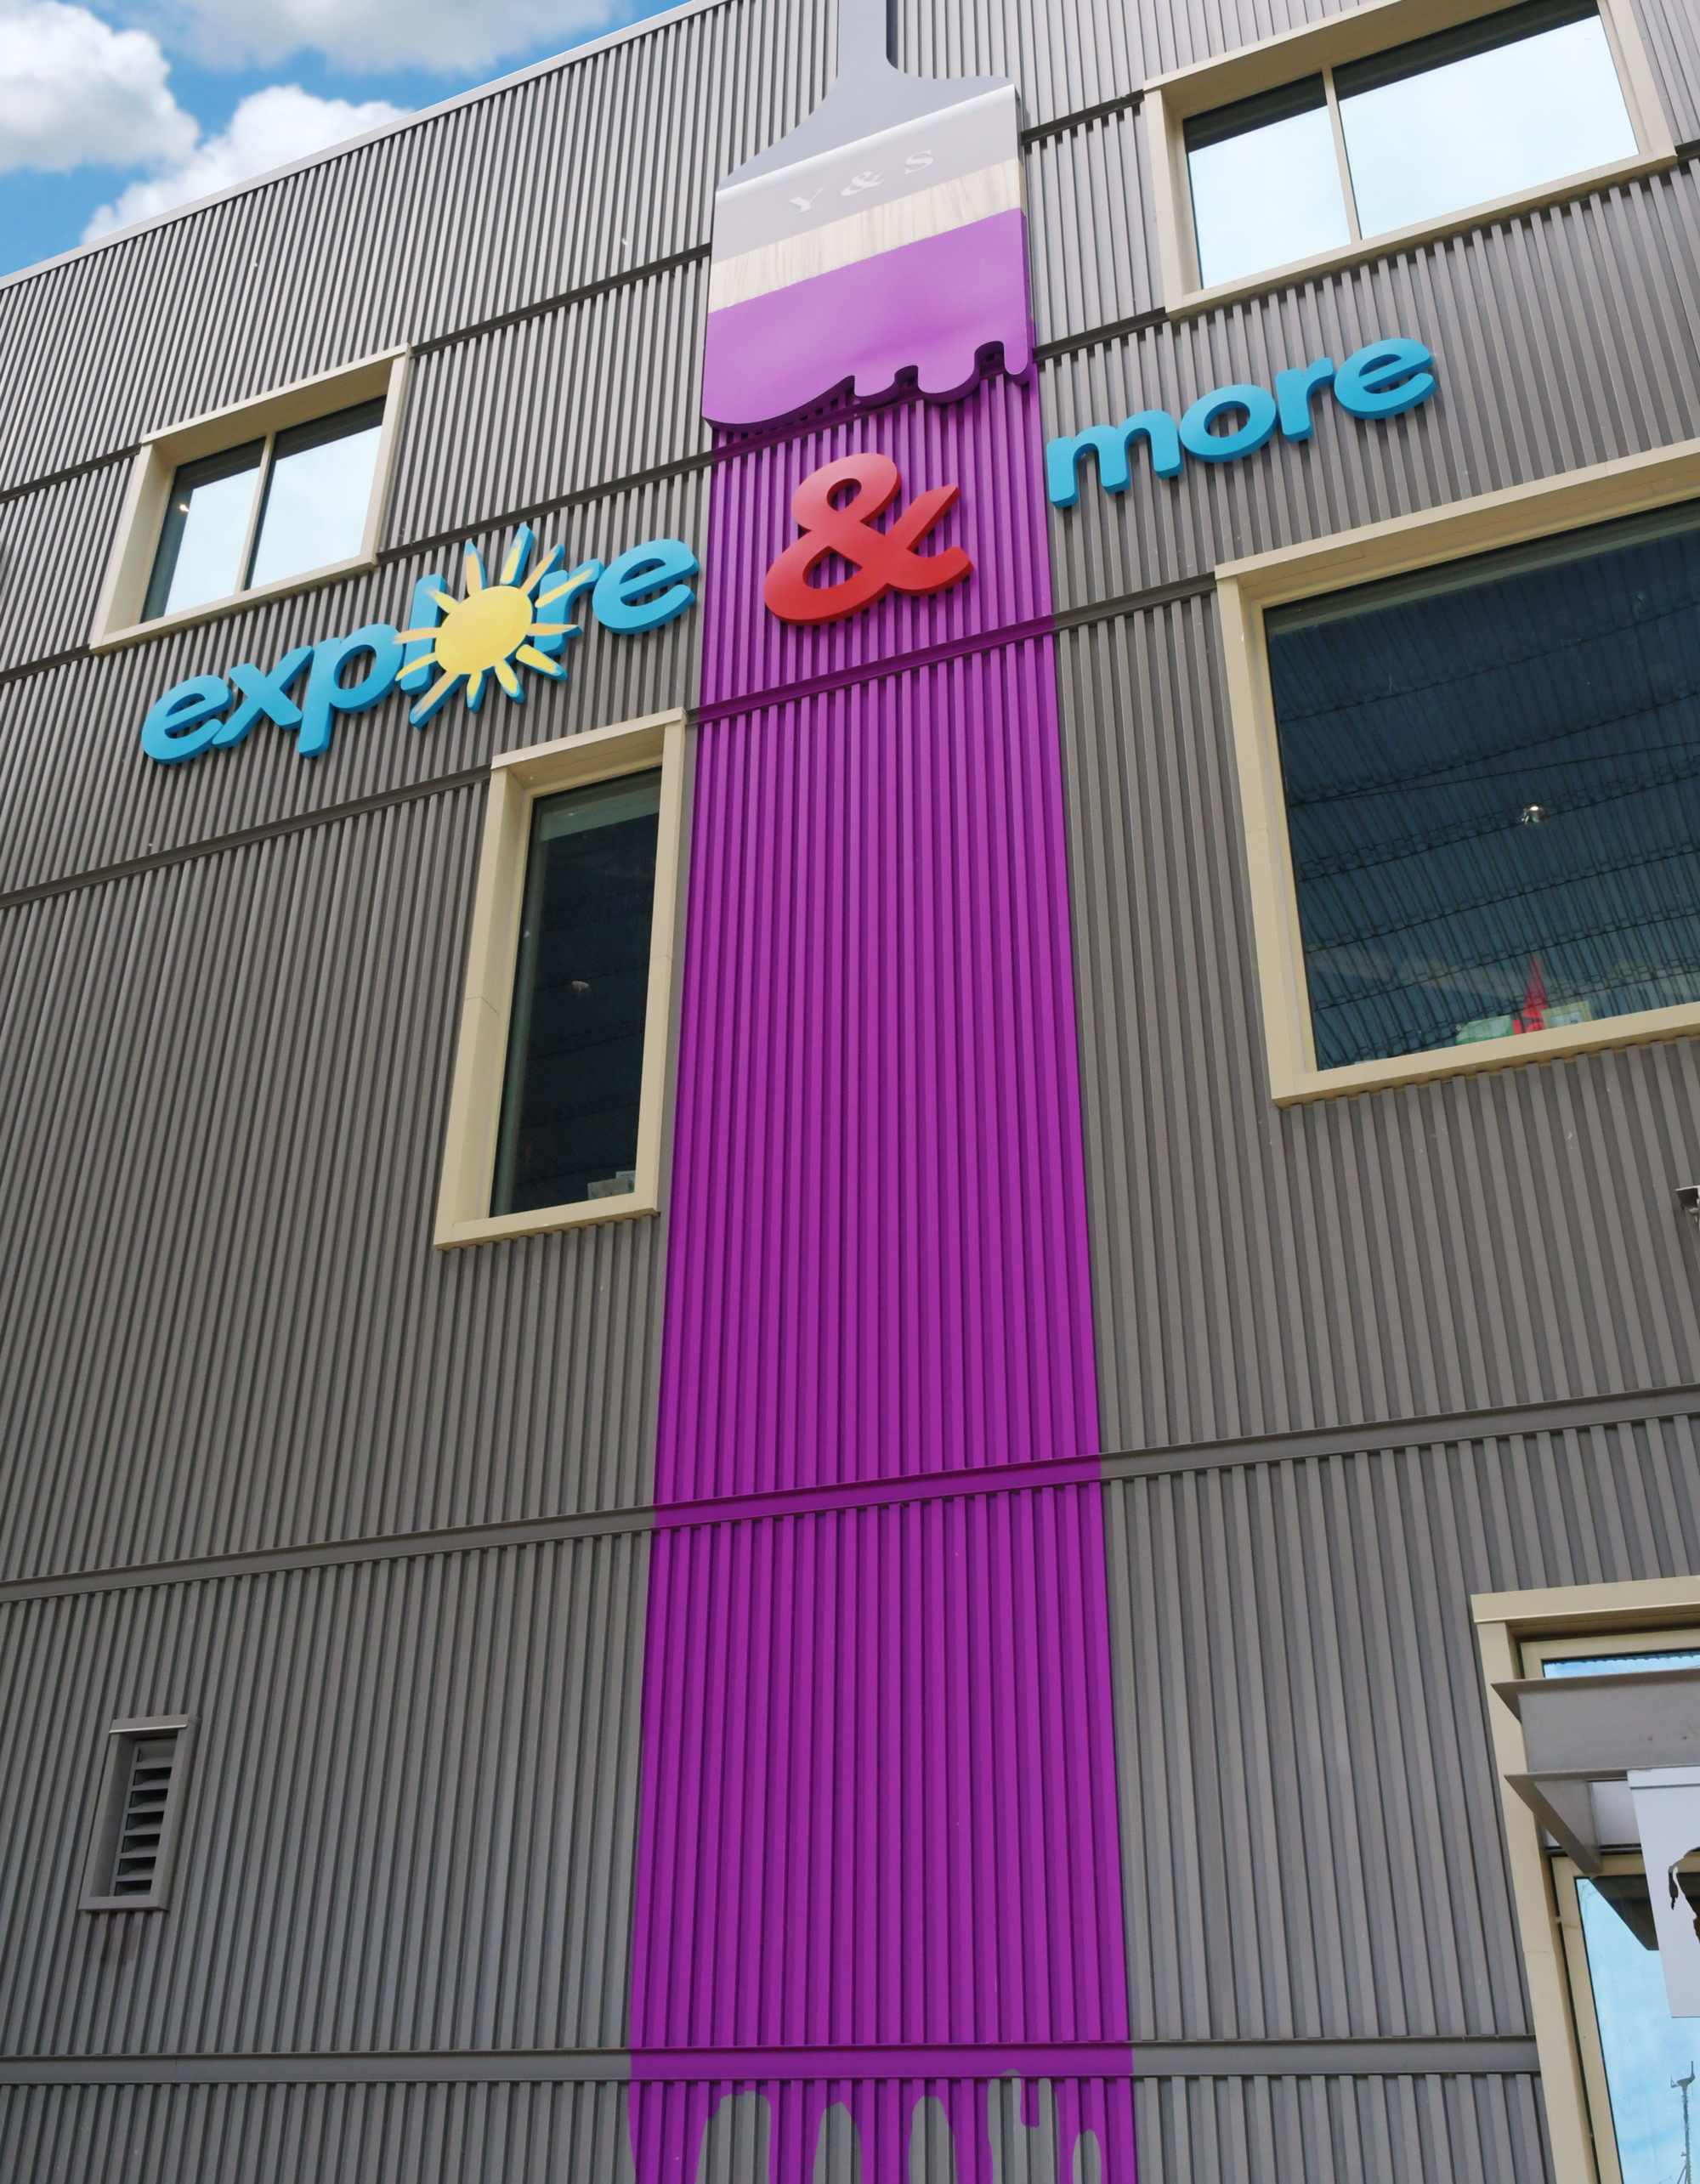 Exterior signage included dimensional graphics